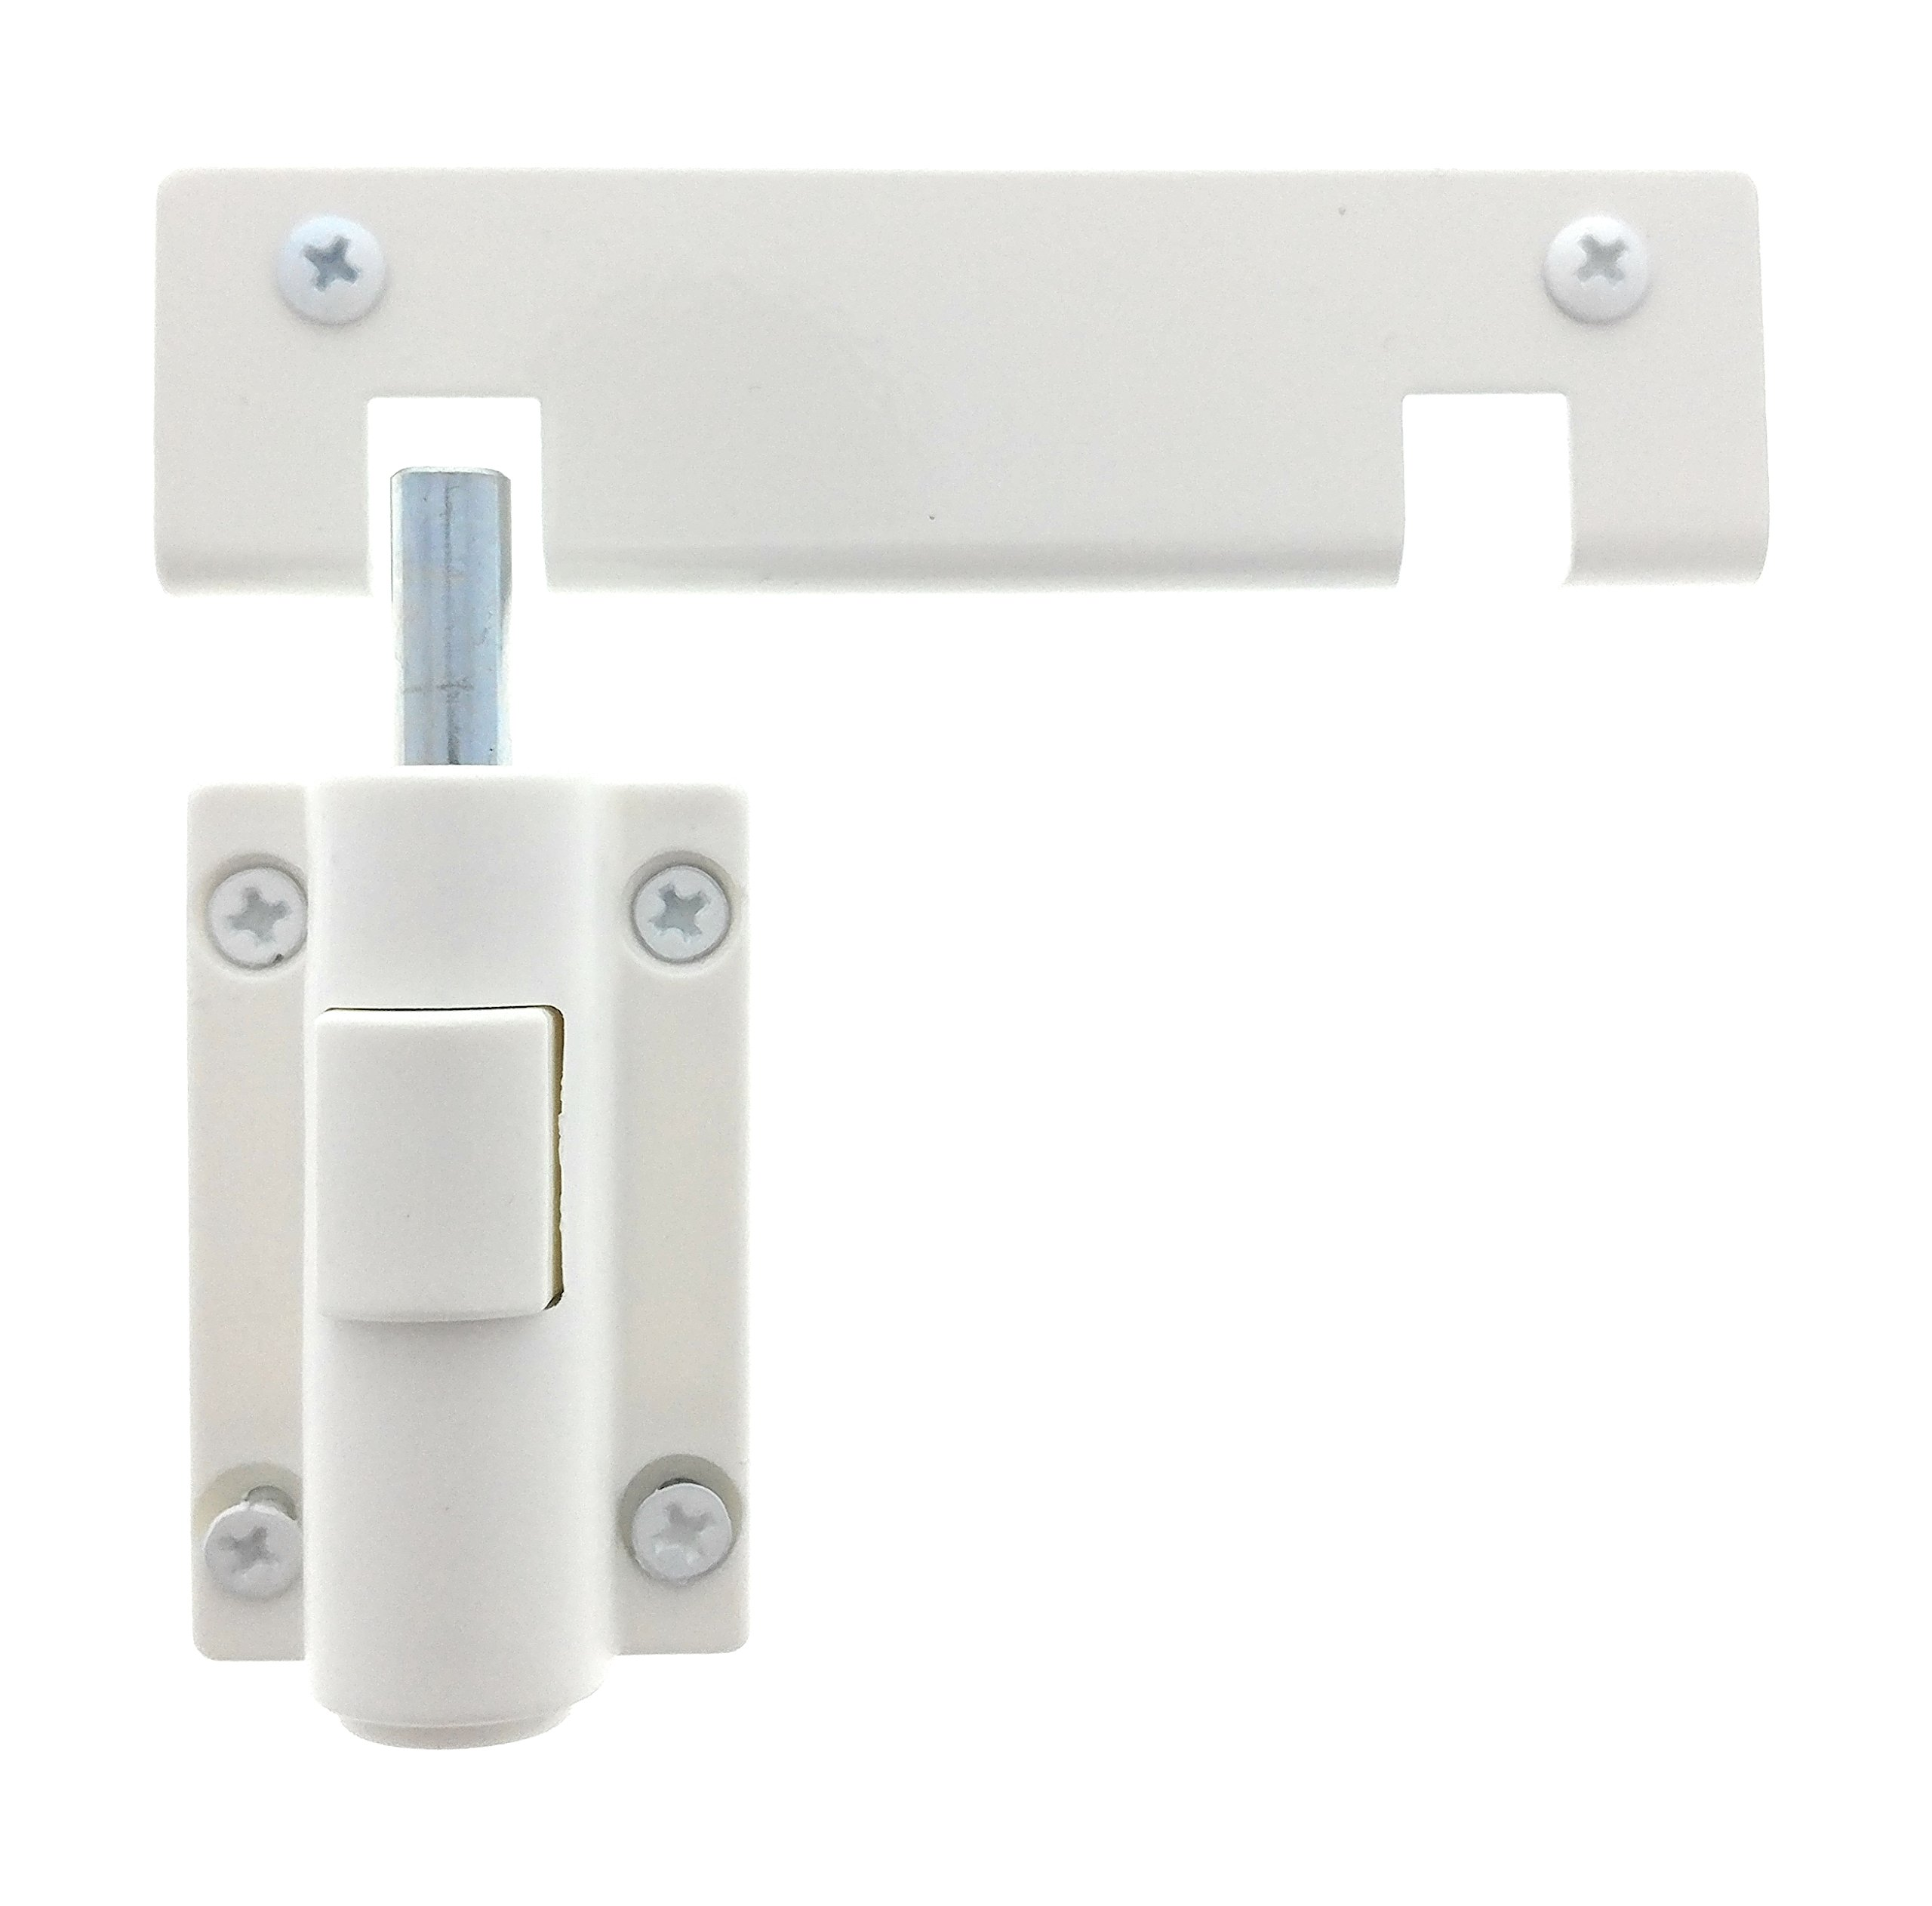 Patio Door Lock, Child Safety Push Button Bolt Action Security Lock for Sliding Doors with Adjustable Notch for Locked Partially Opened Doors, by Essential Values